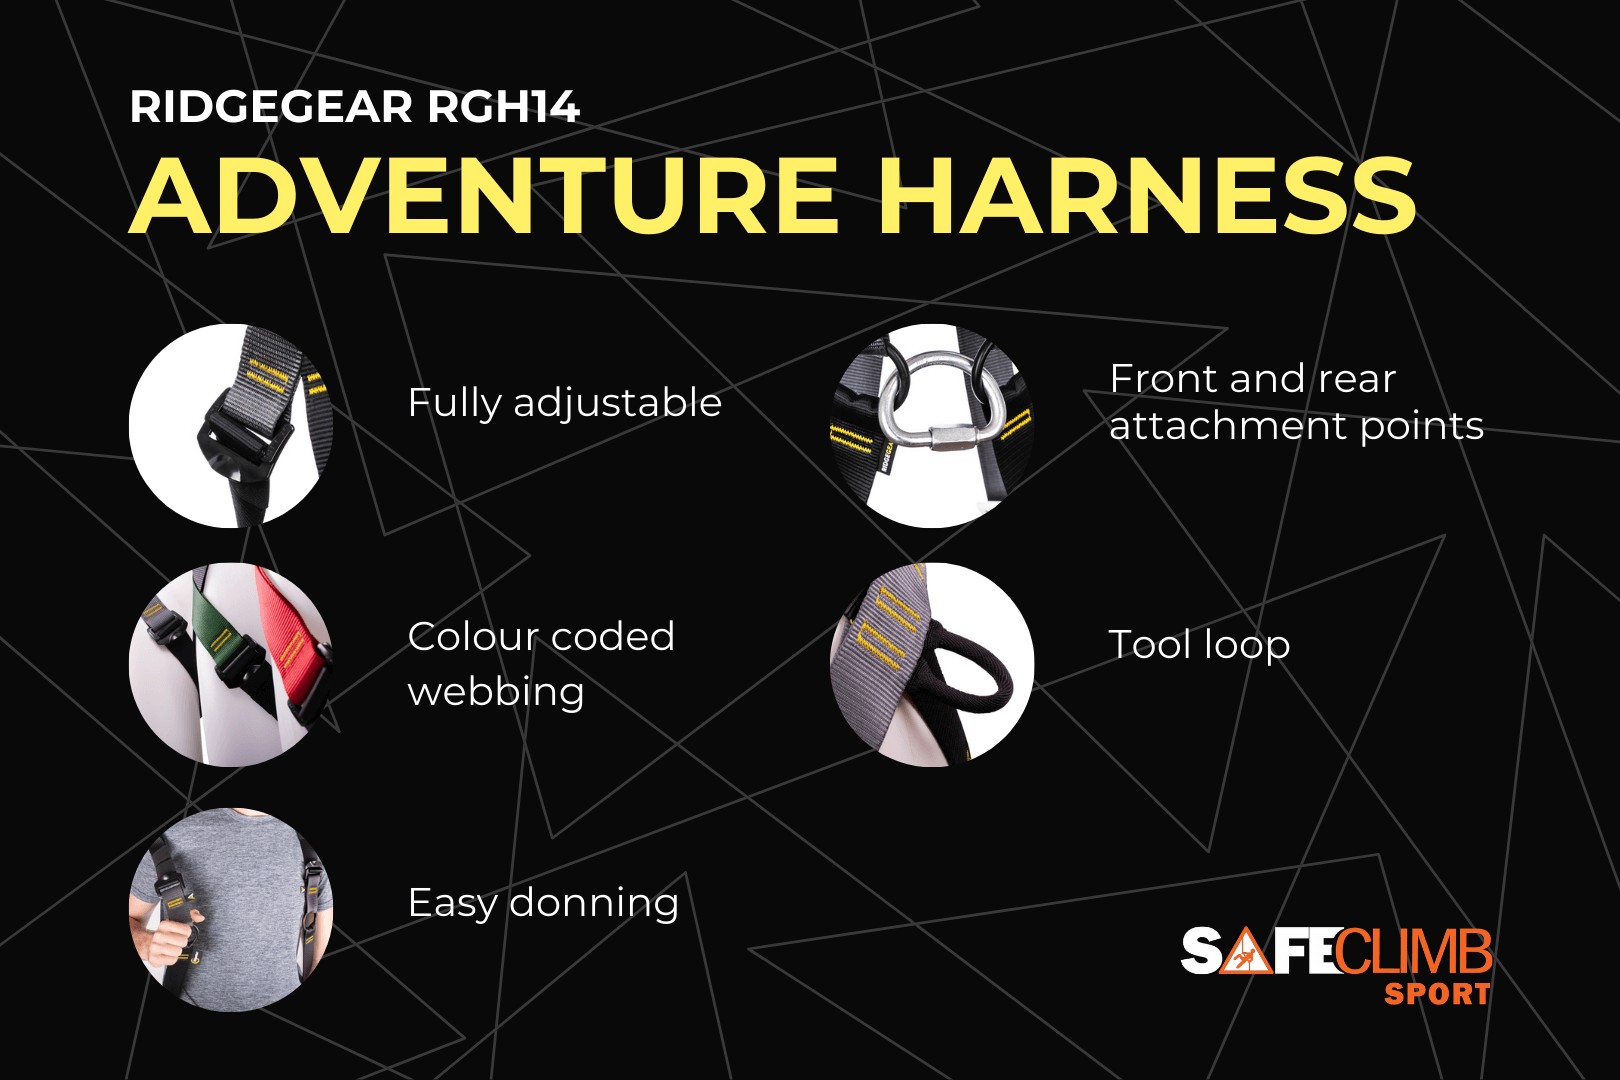 RGH14 Adventure Harness Key Features - offered by SafeClimb